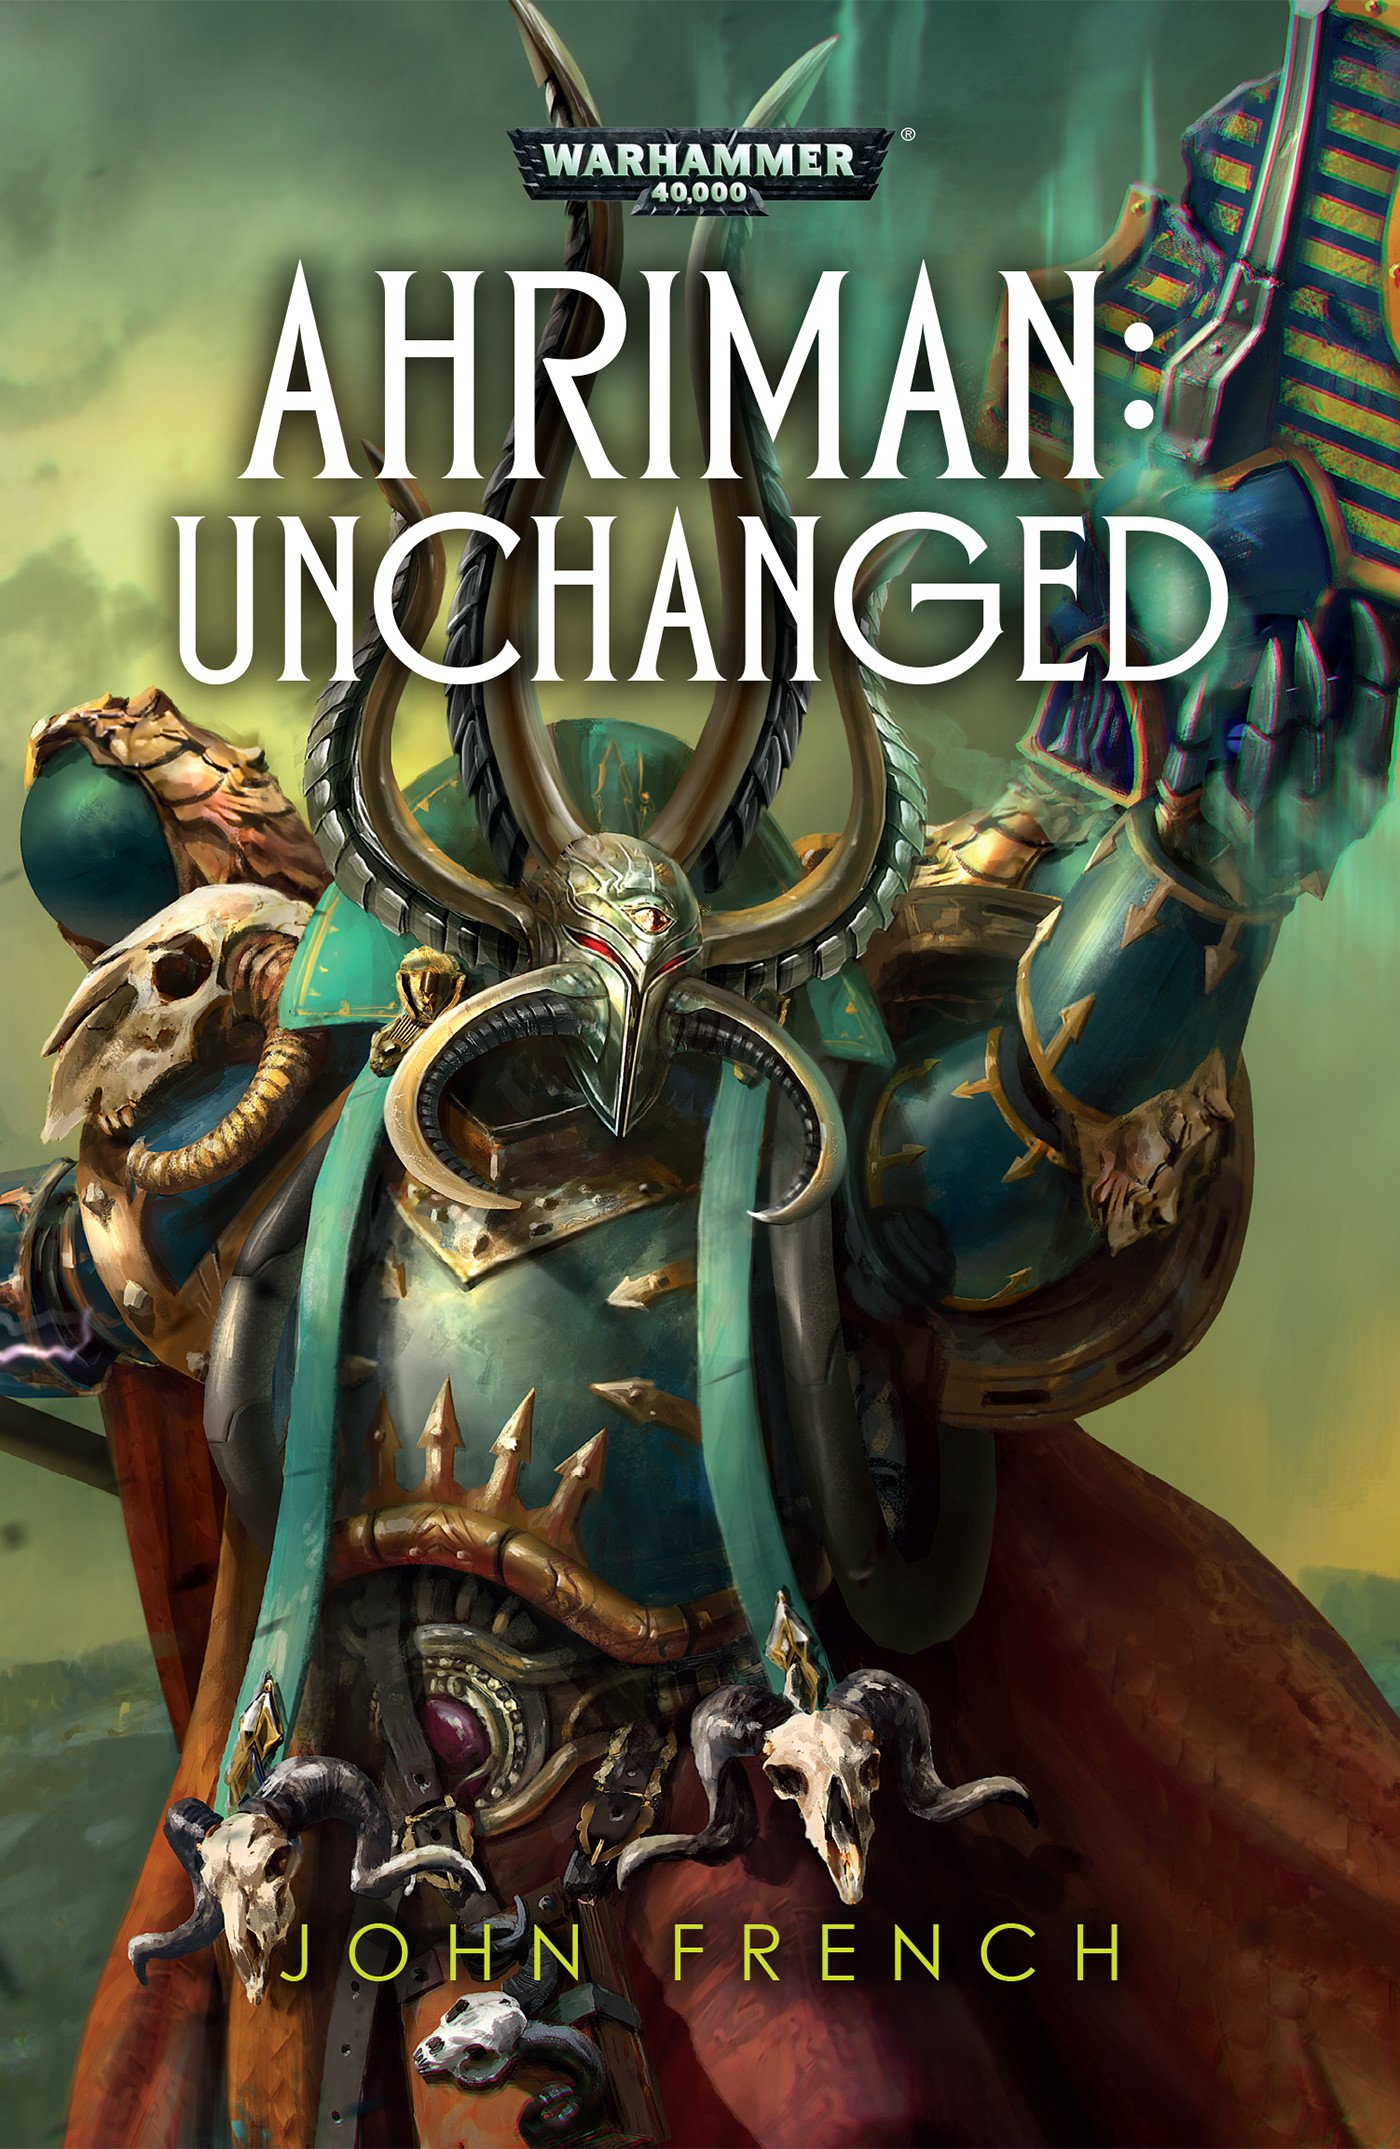 Ahriman: Unchanged by John French